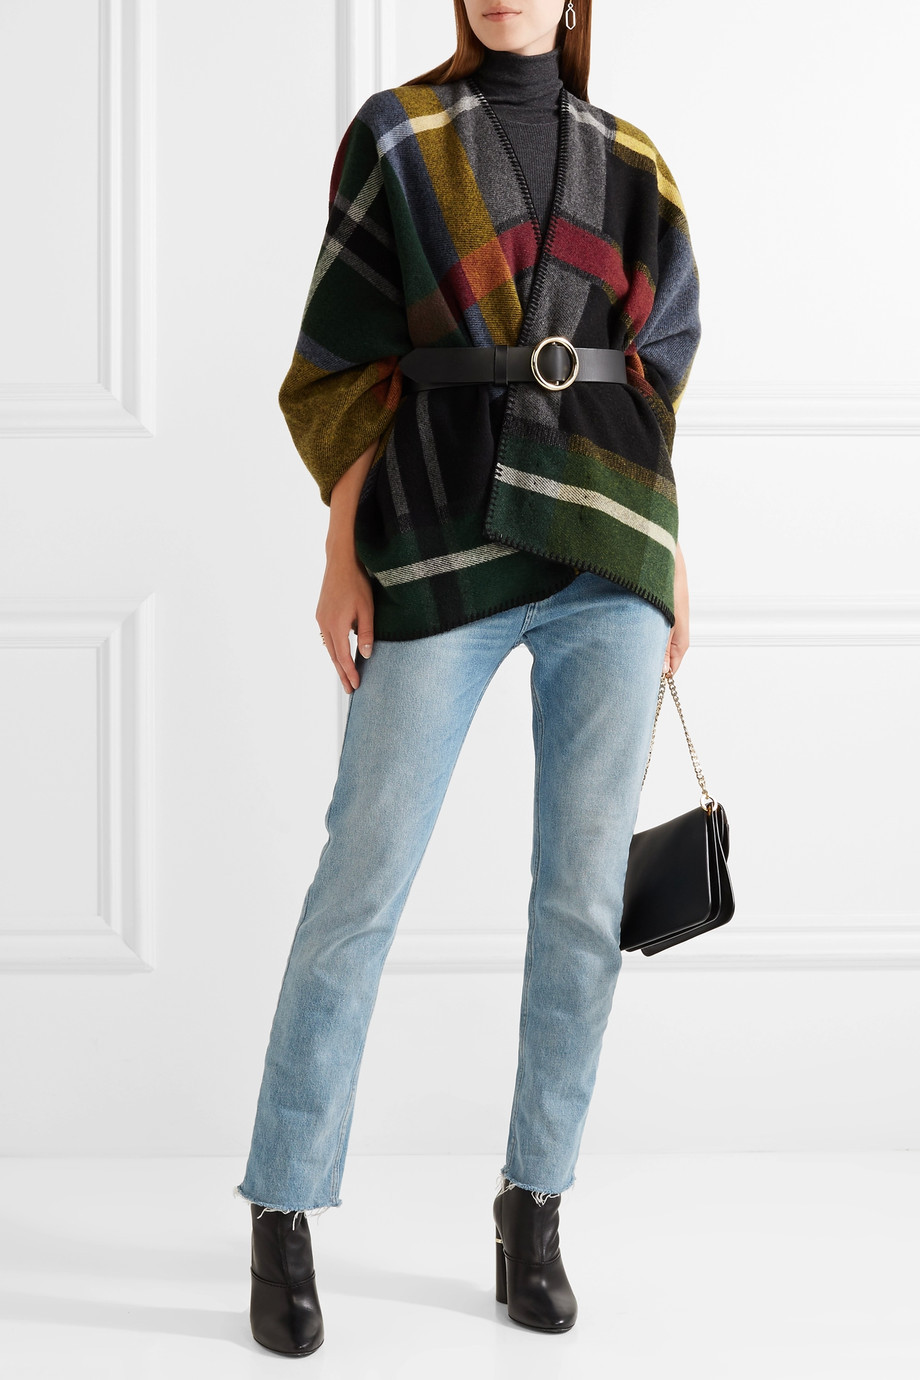 Holzweiler Tableau plaid wool wrap $325